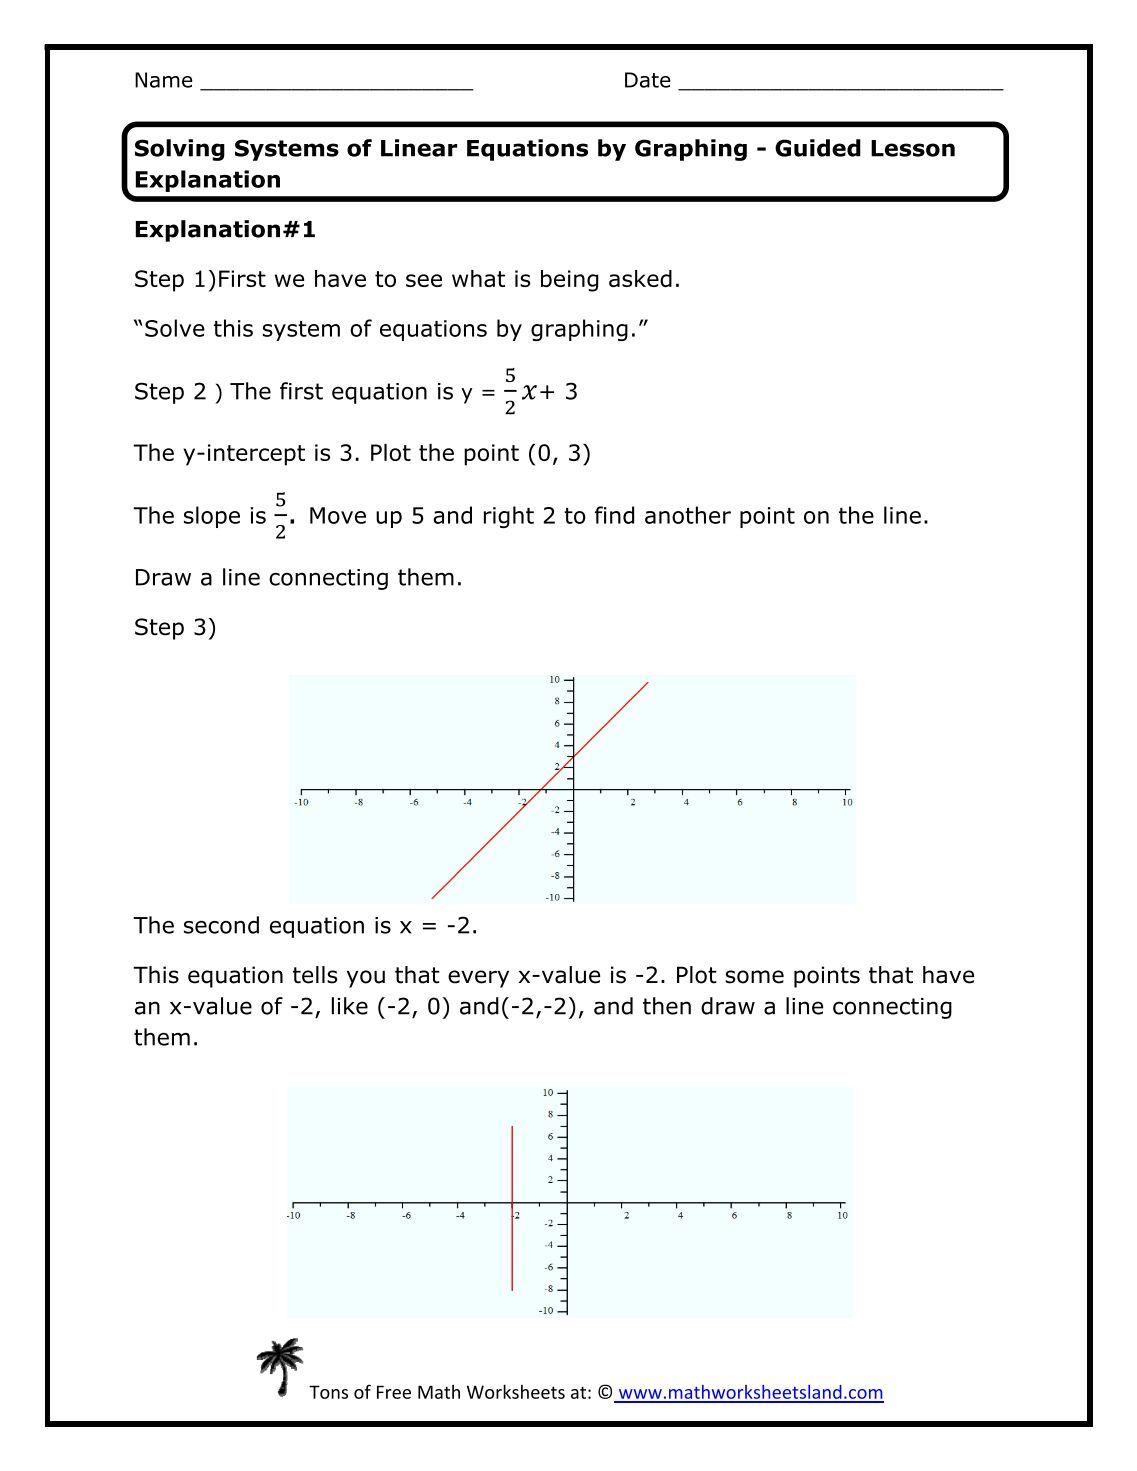 Adult. Best Math Worksheet Land Inspirations. Myltio Inspiring ...